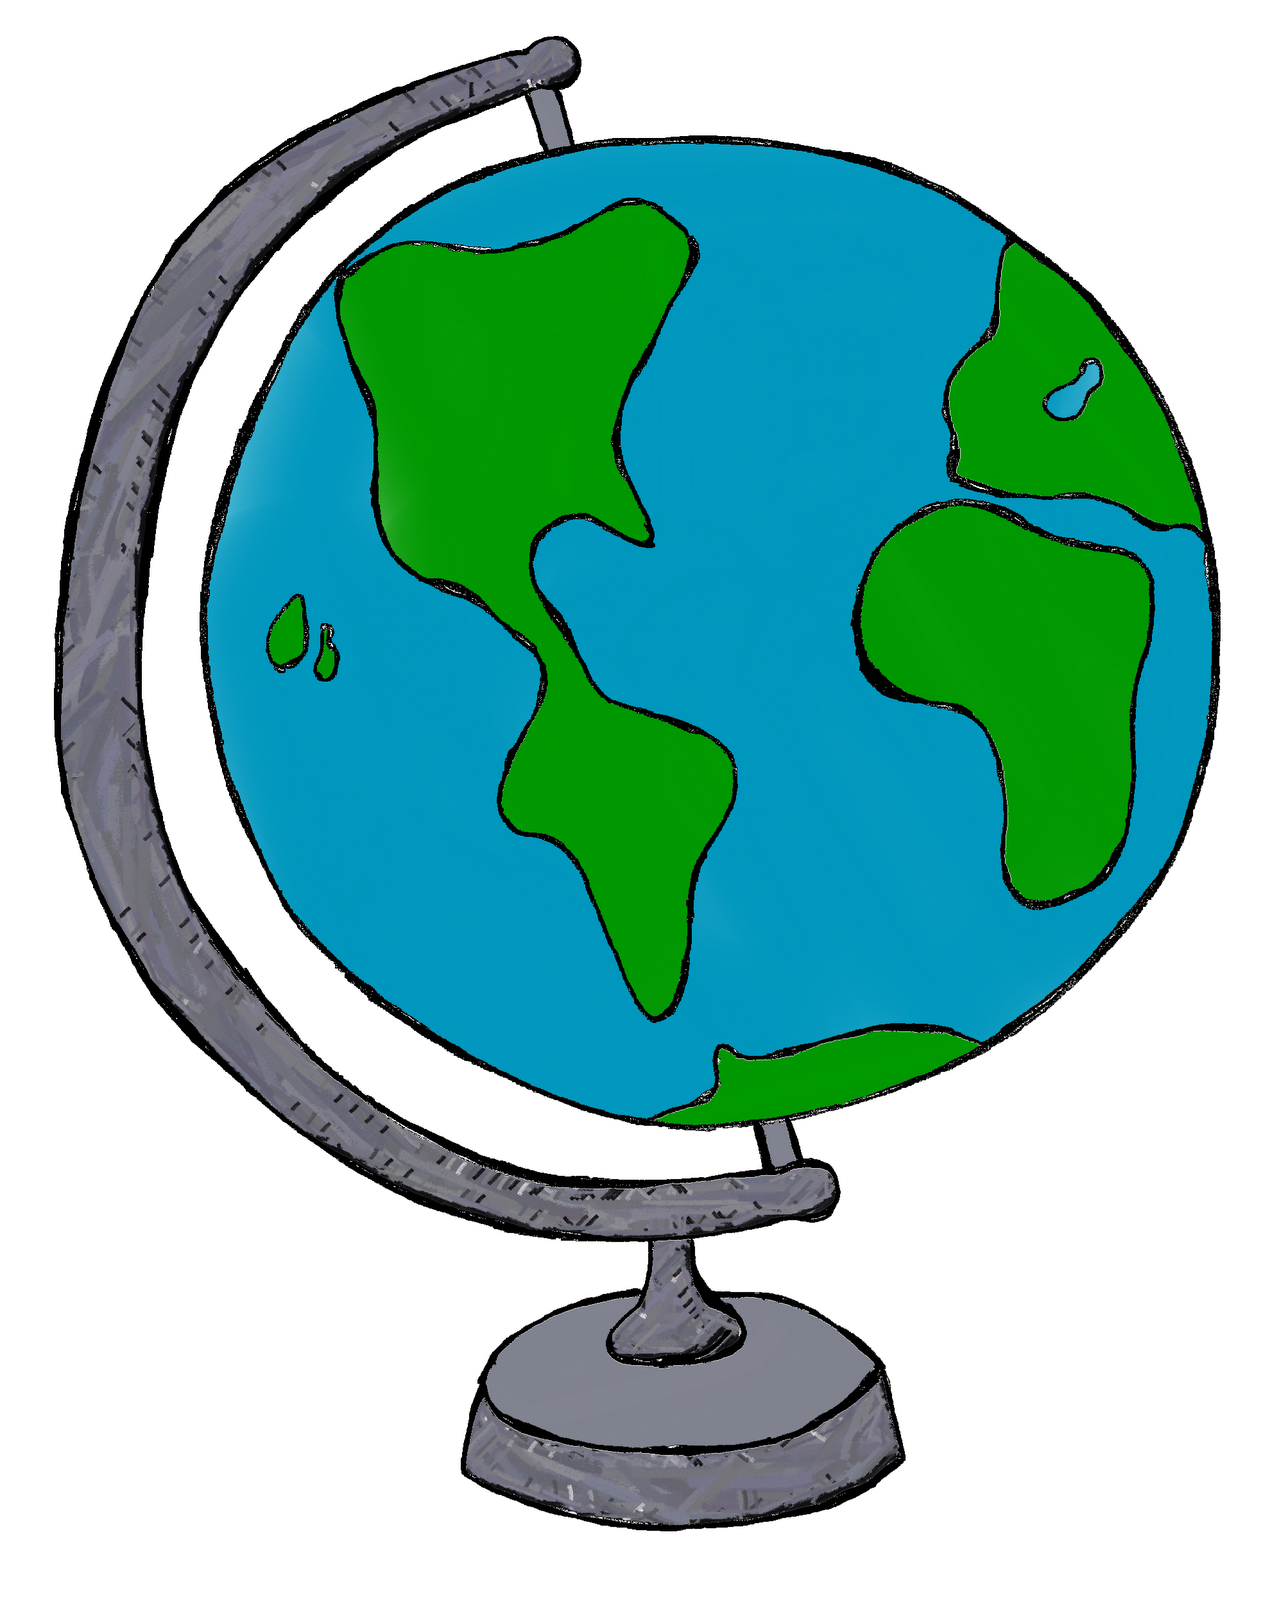 Clip Art by Carrie Teaching First: My World Doodles clip ...